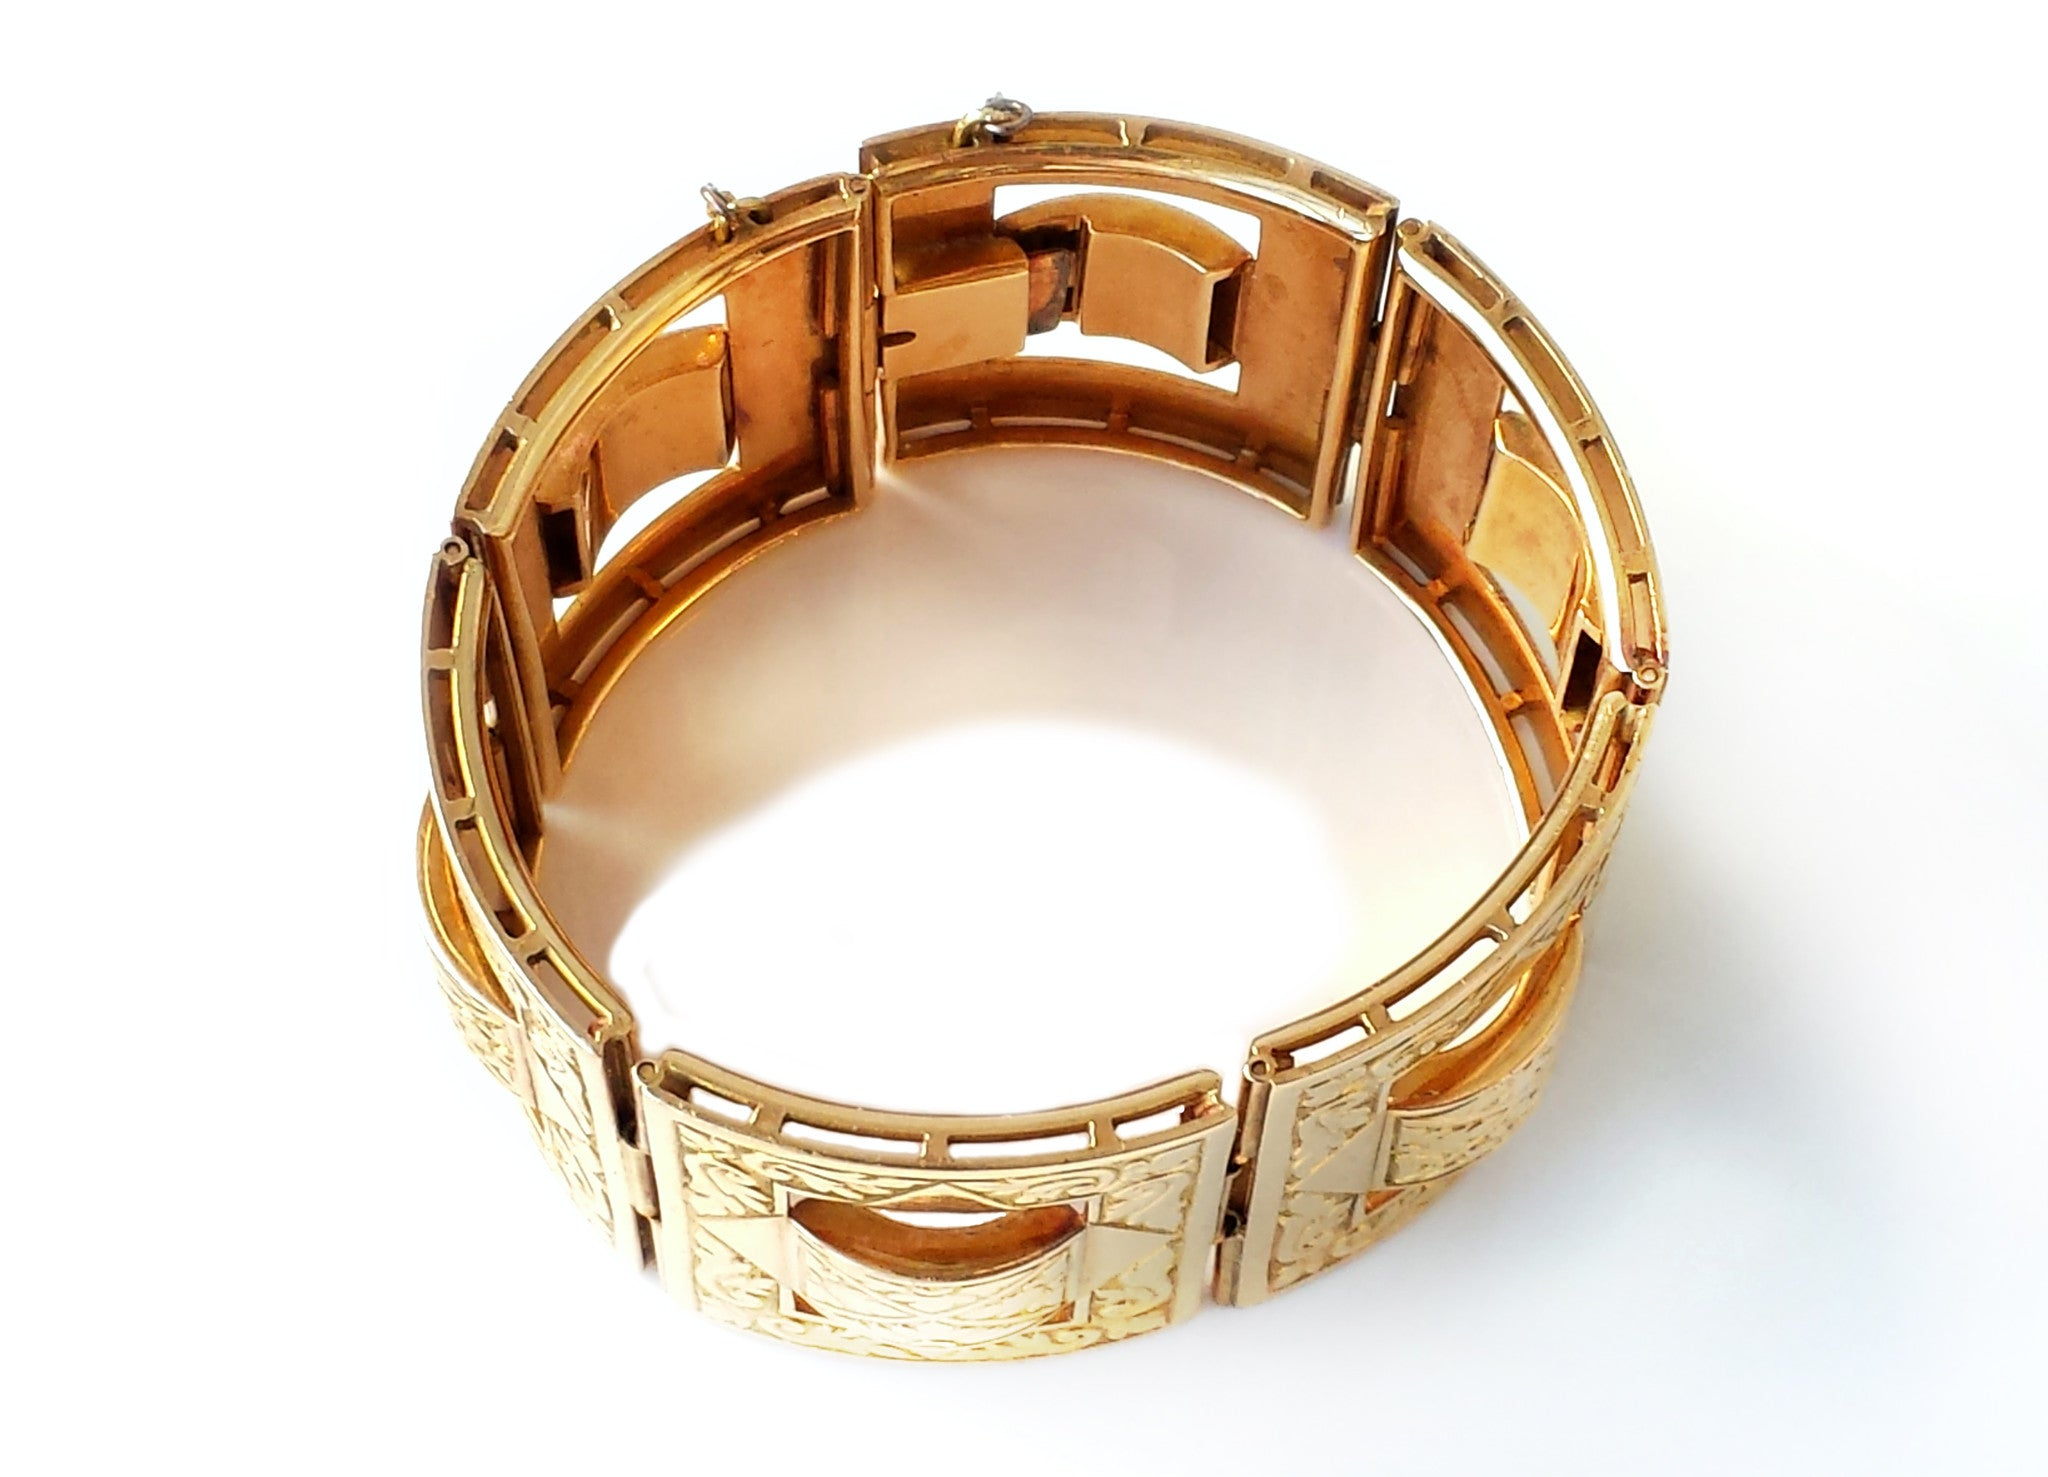 bracelet bangles shop id backroom bangle taxco bracelets full more to in and click vintage expand item women gold f for